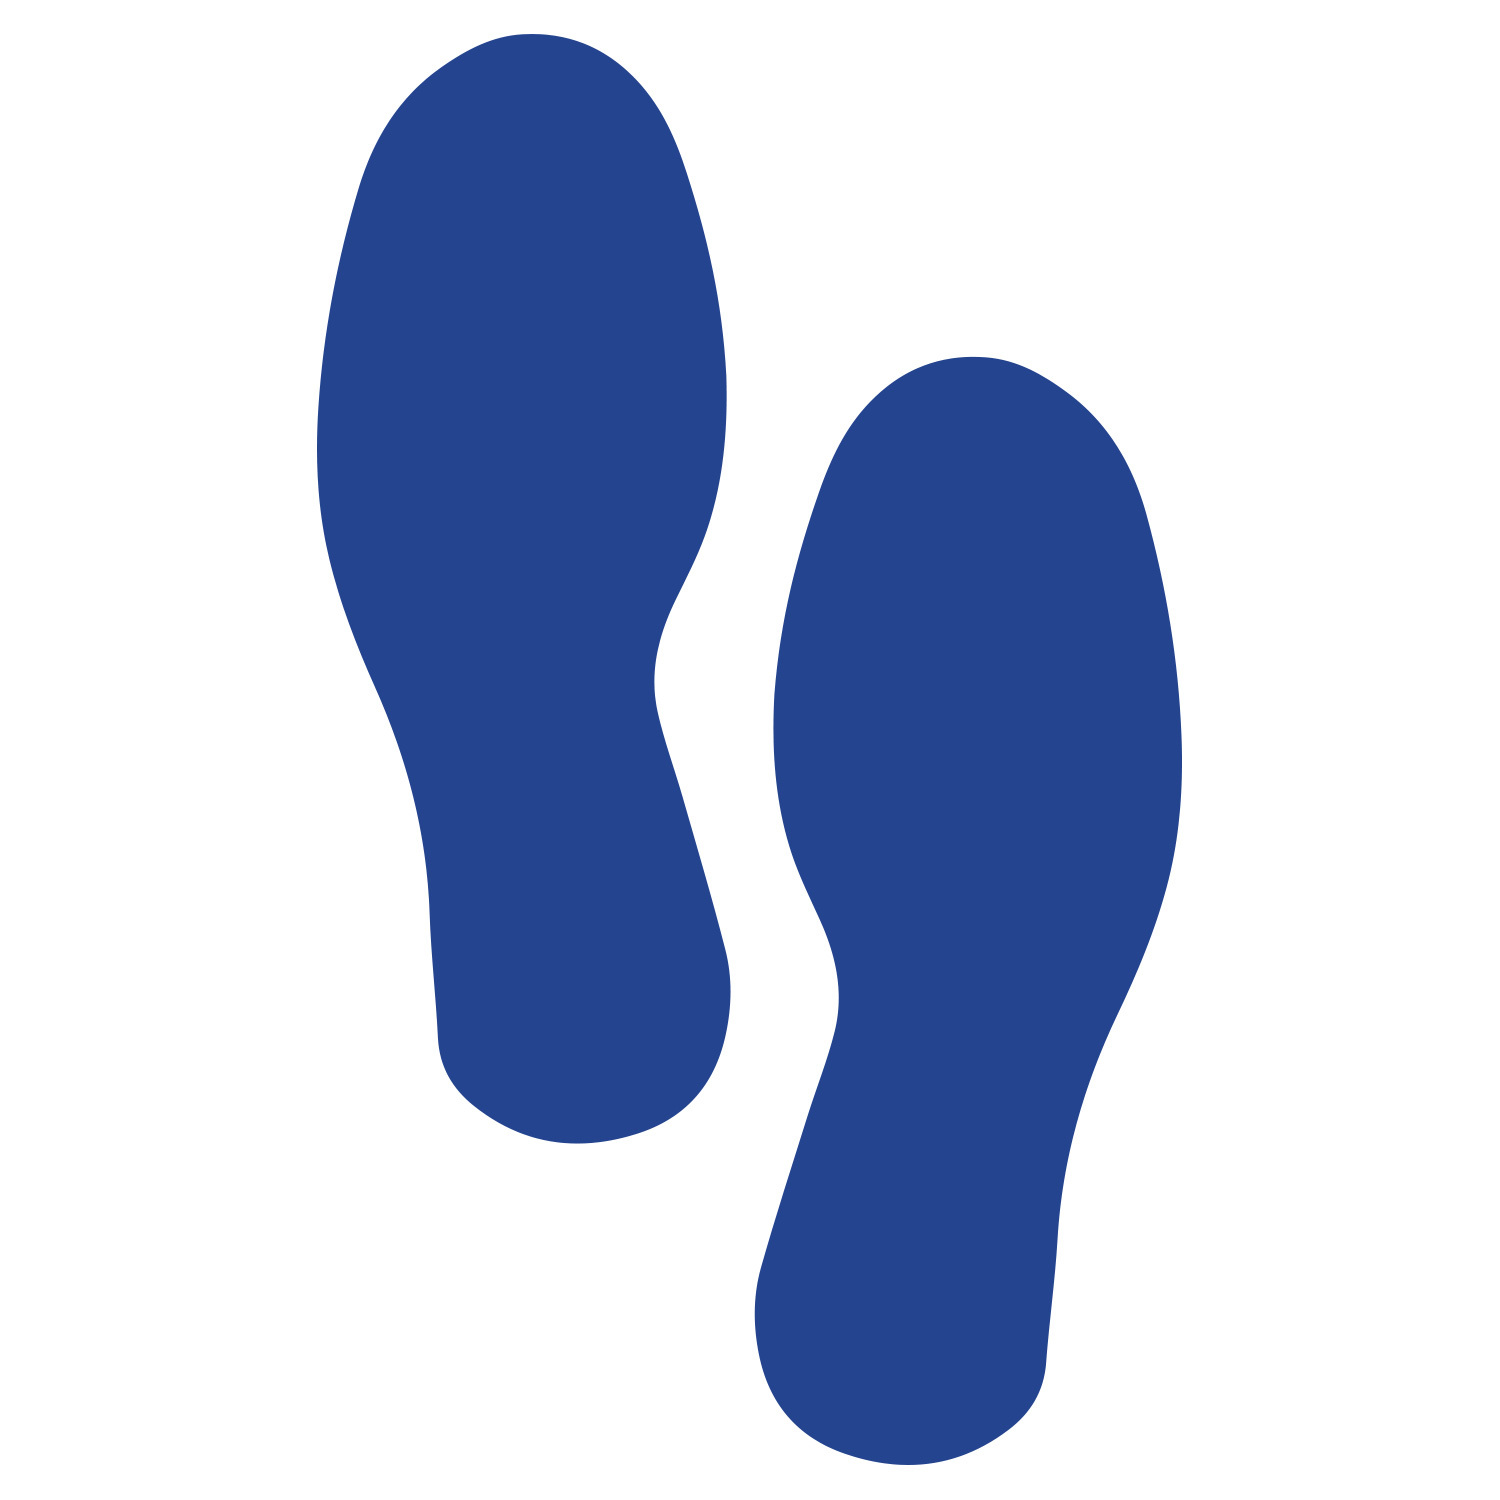 Primary image for LiteMark Mini Size Blue Removable Footprint Decals  - Pack of 20 (10 Pairs)